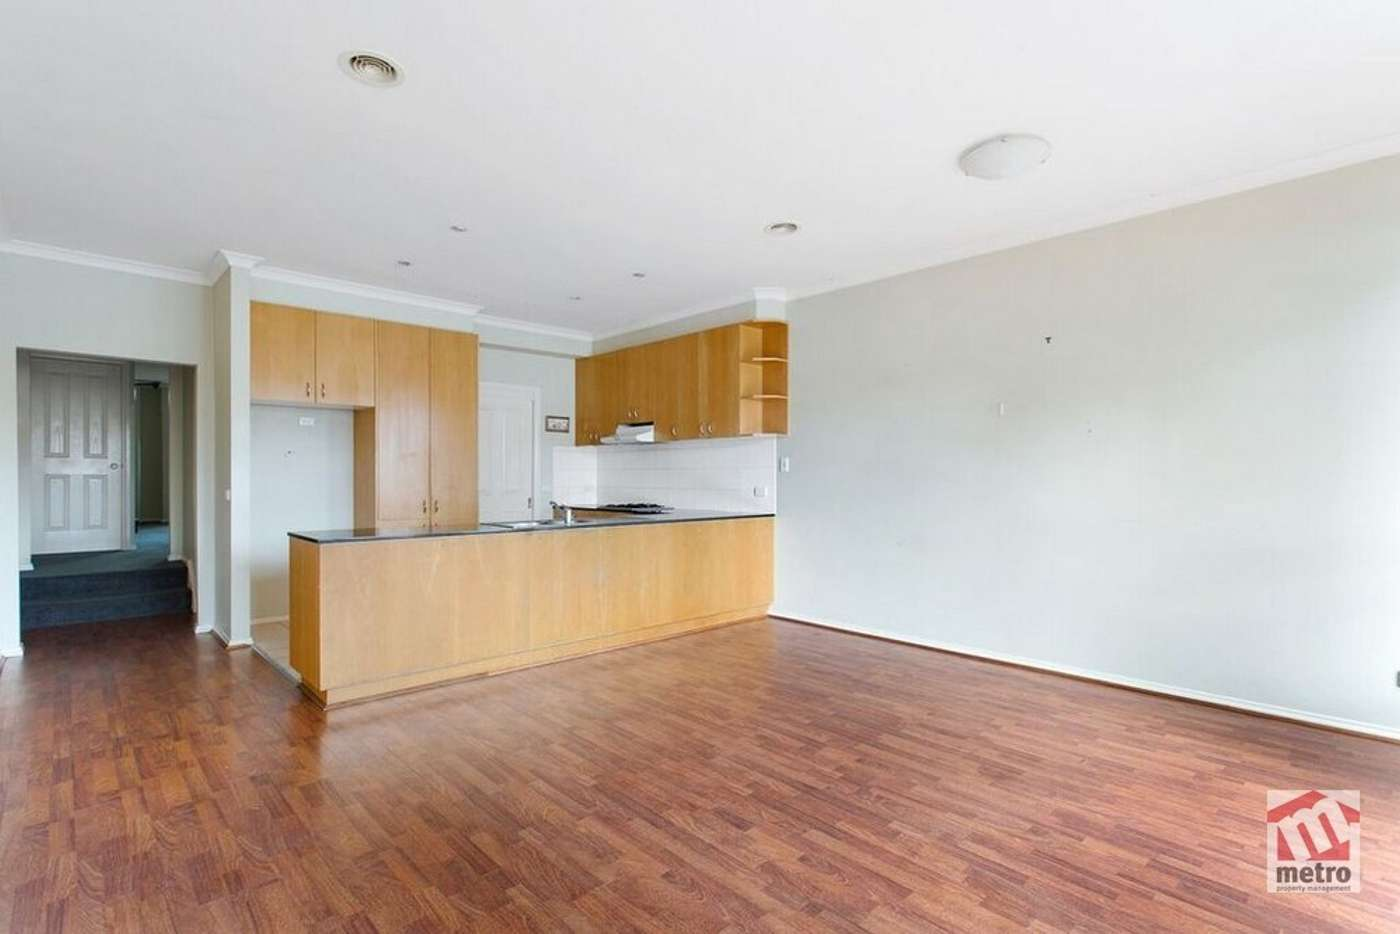 Main view of Homely townhouse listing, 202 Nicholson Street, Brunswick East VIC 3057